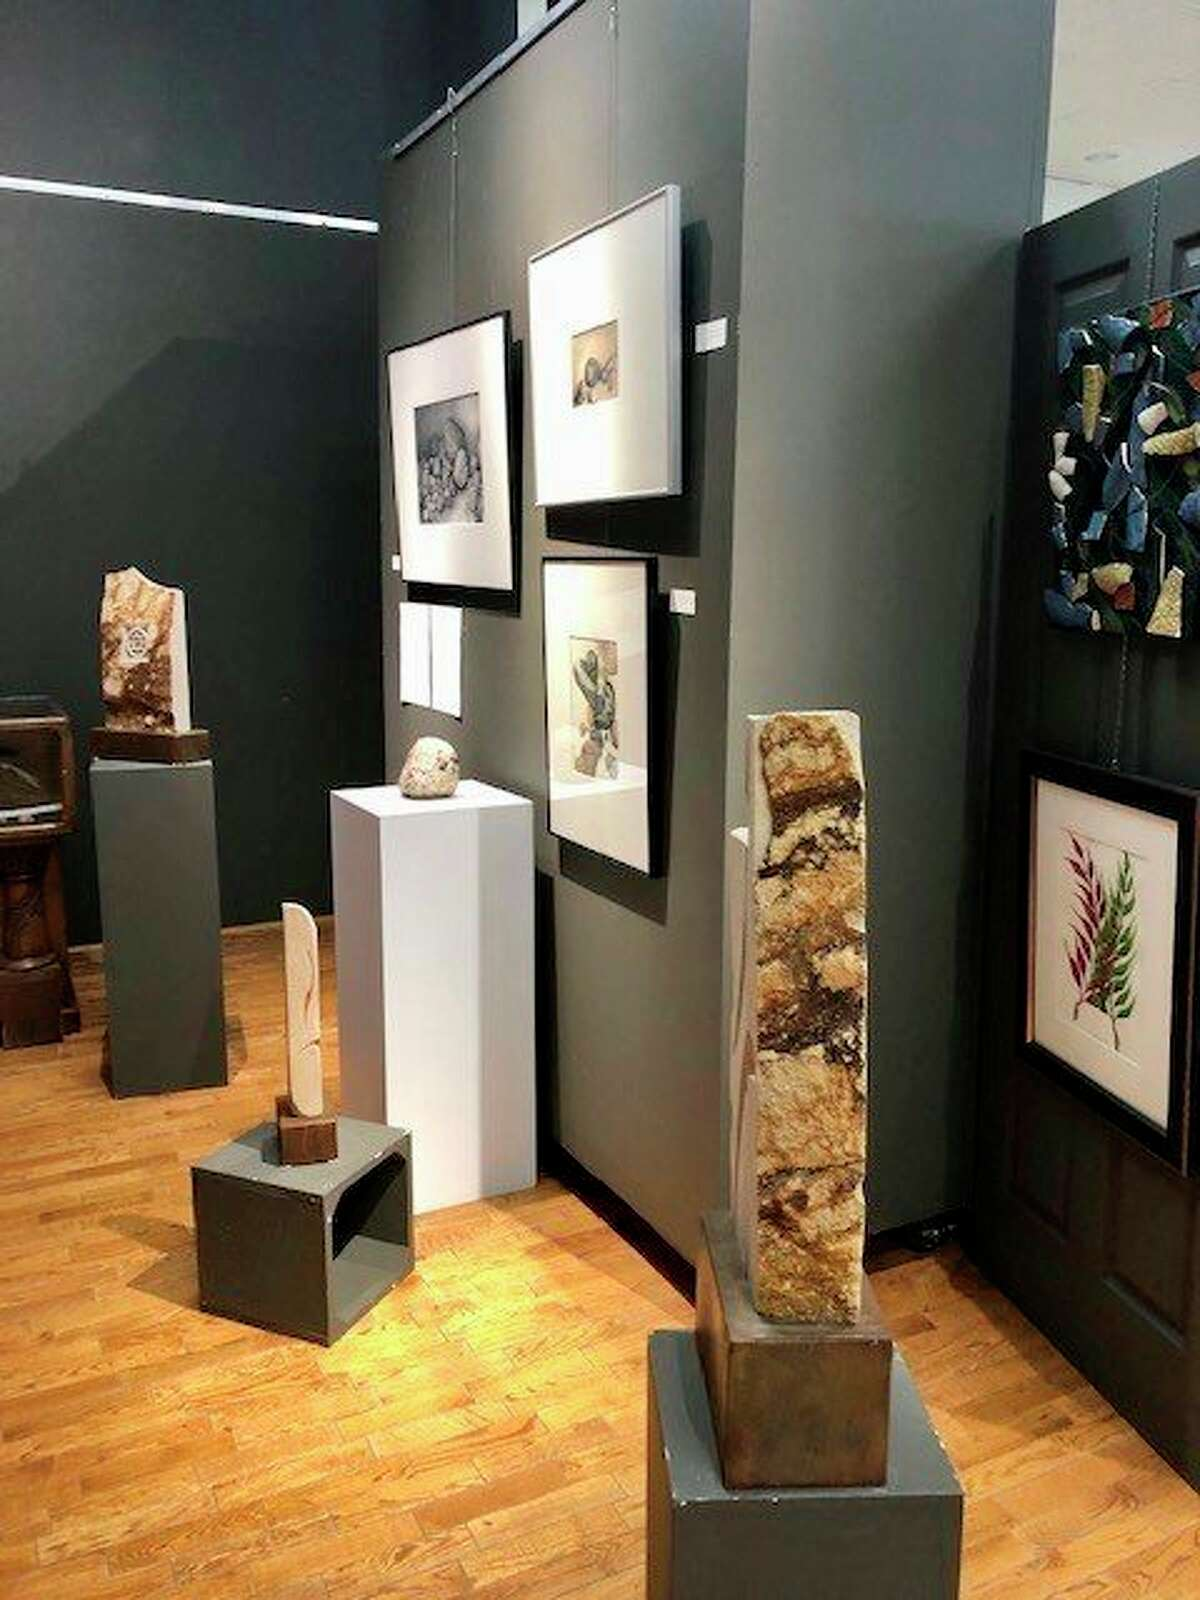 """The Artworks exhibit """"Geology Rocks!"""" running June 1 through August 26 featuresthe photography of Stephen ross and his work """"Lithoscapes: The Abstract Art of Rock,"""" sculptures by Autumn Bildson, and drawings by Julie Tyslicky. (Courtesy/Roxanne Cullen)"""